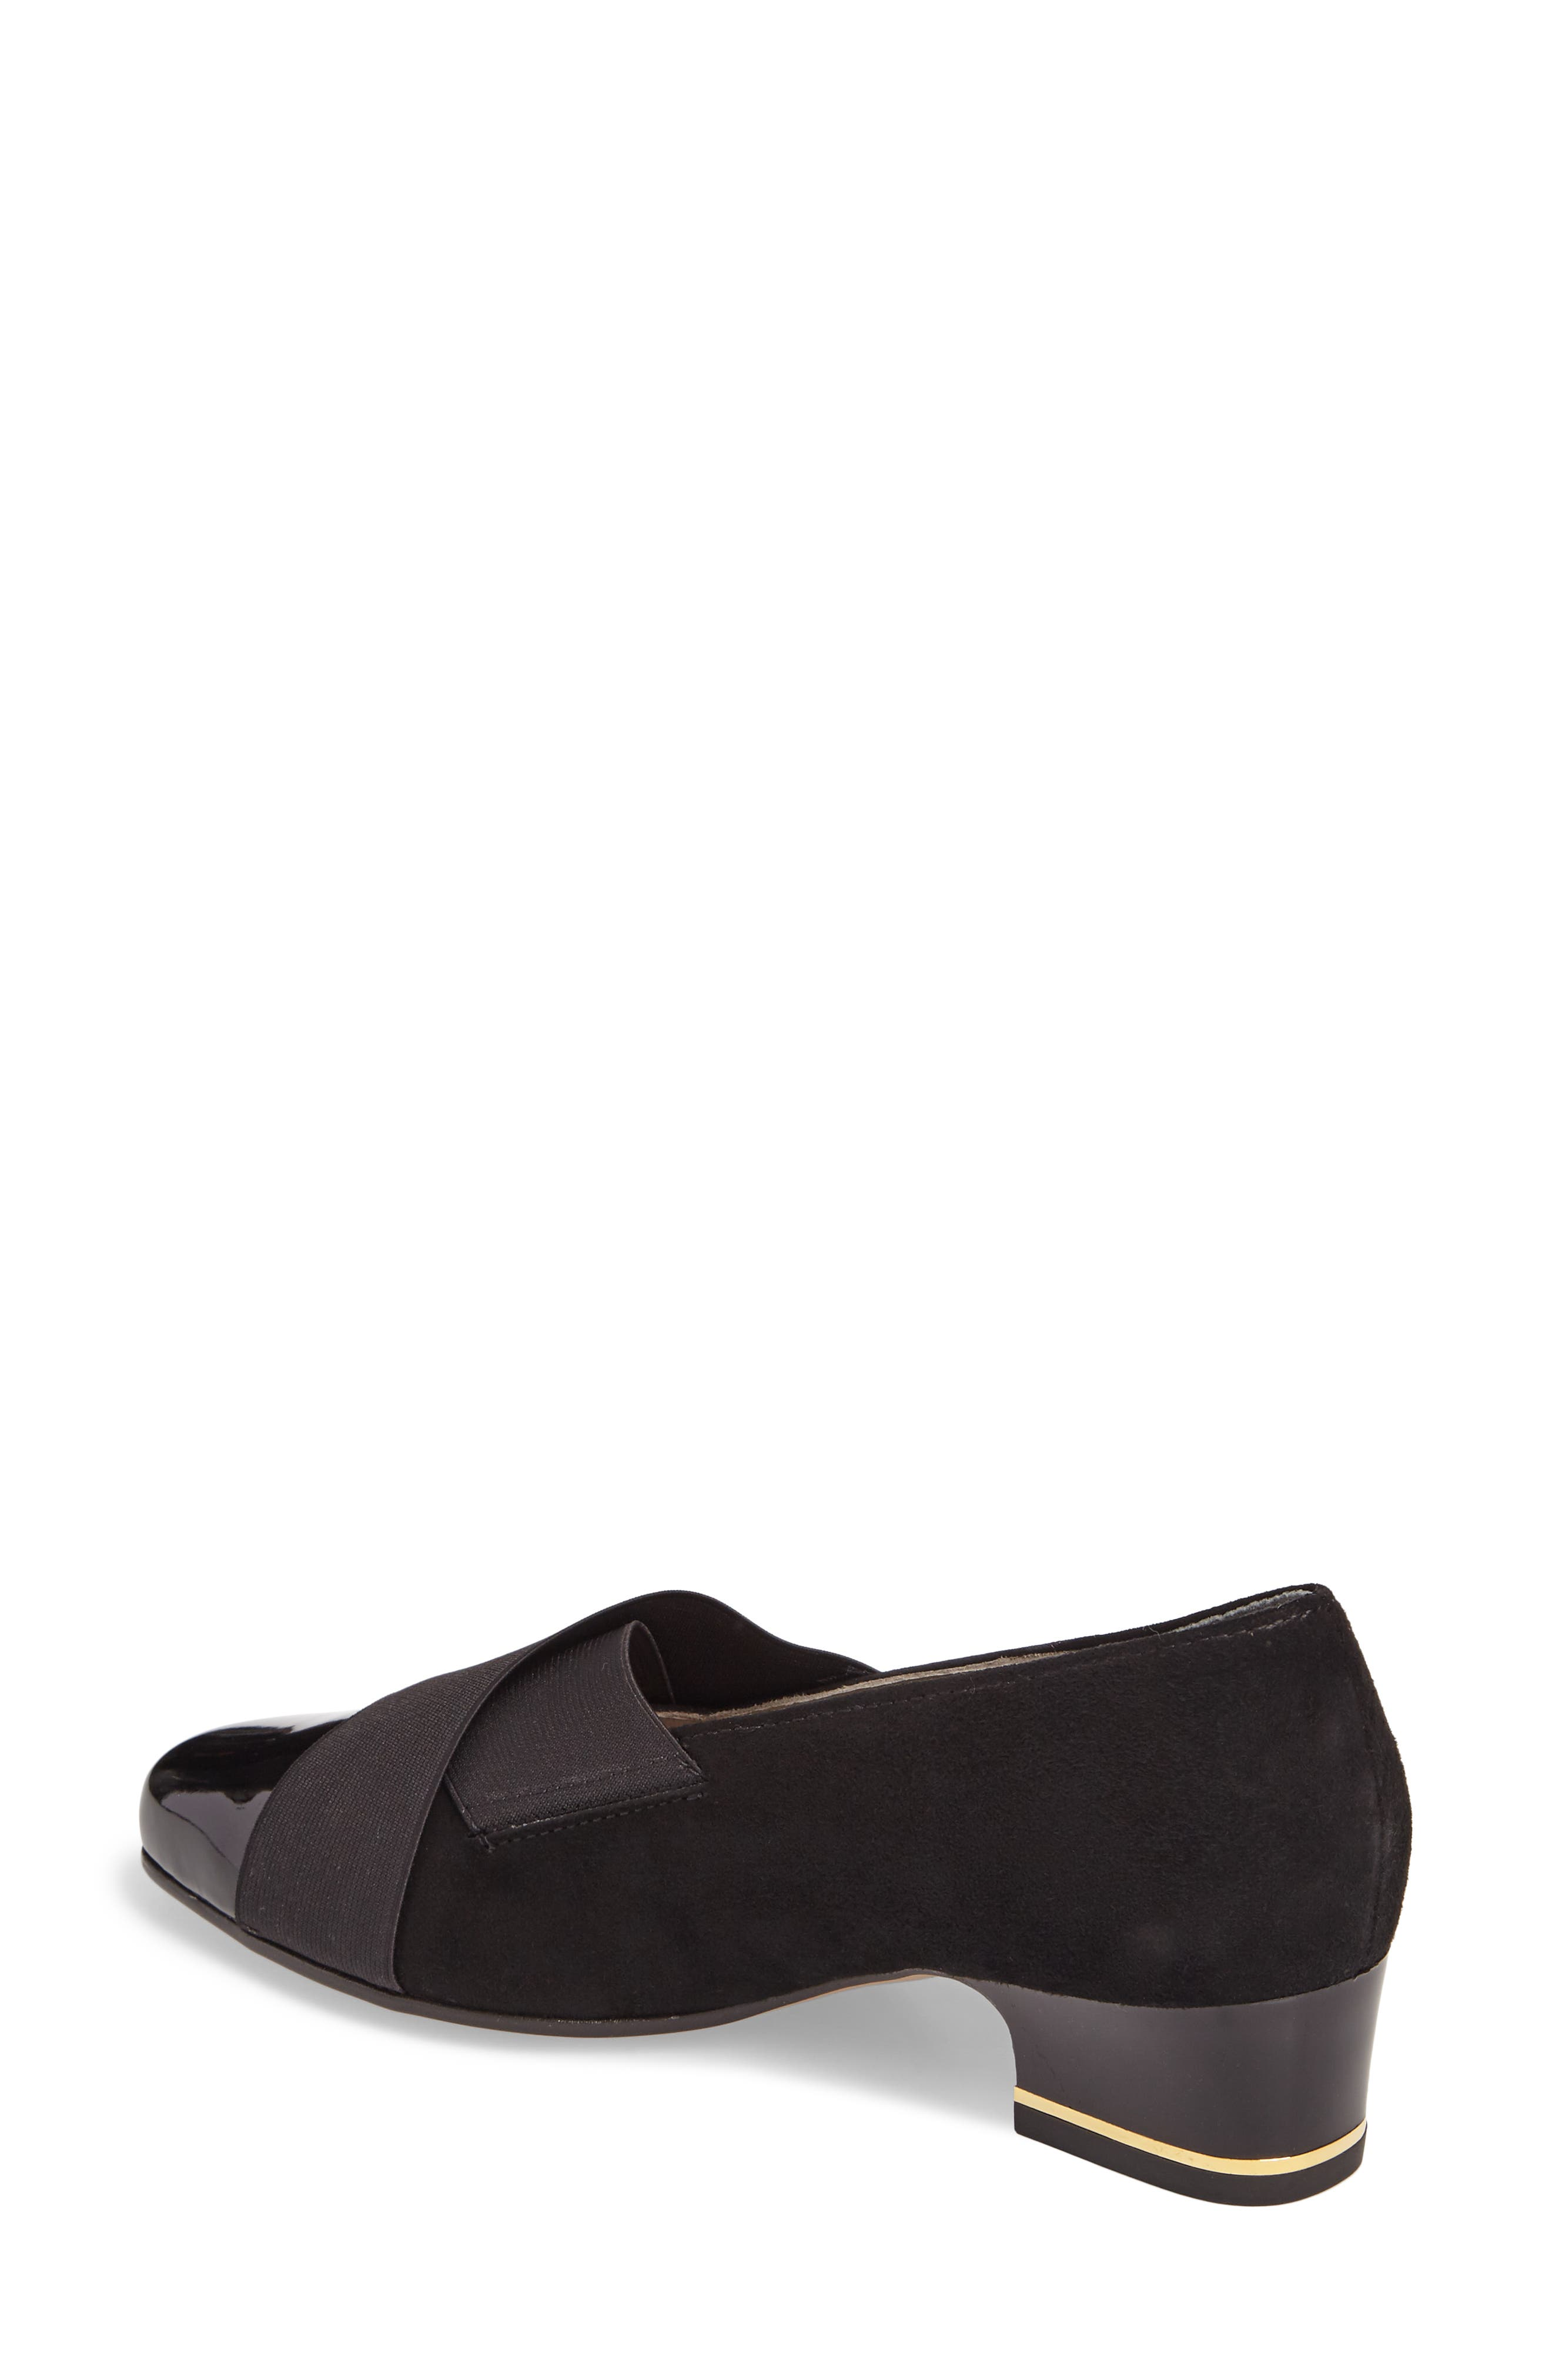 Gina Loafer Pump,                             Alternate thumbnail 2, color,                             BLACK LEATHER